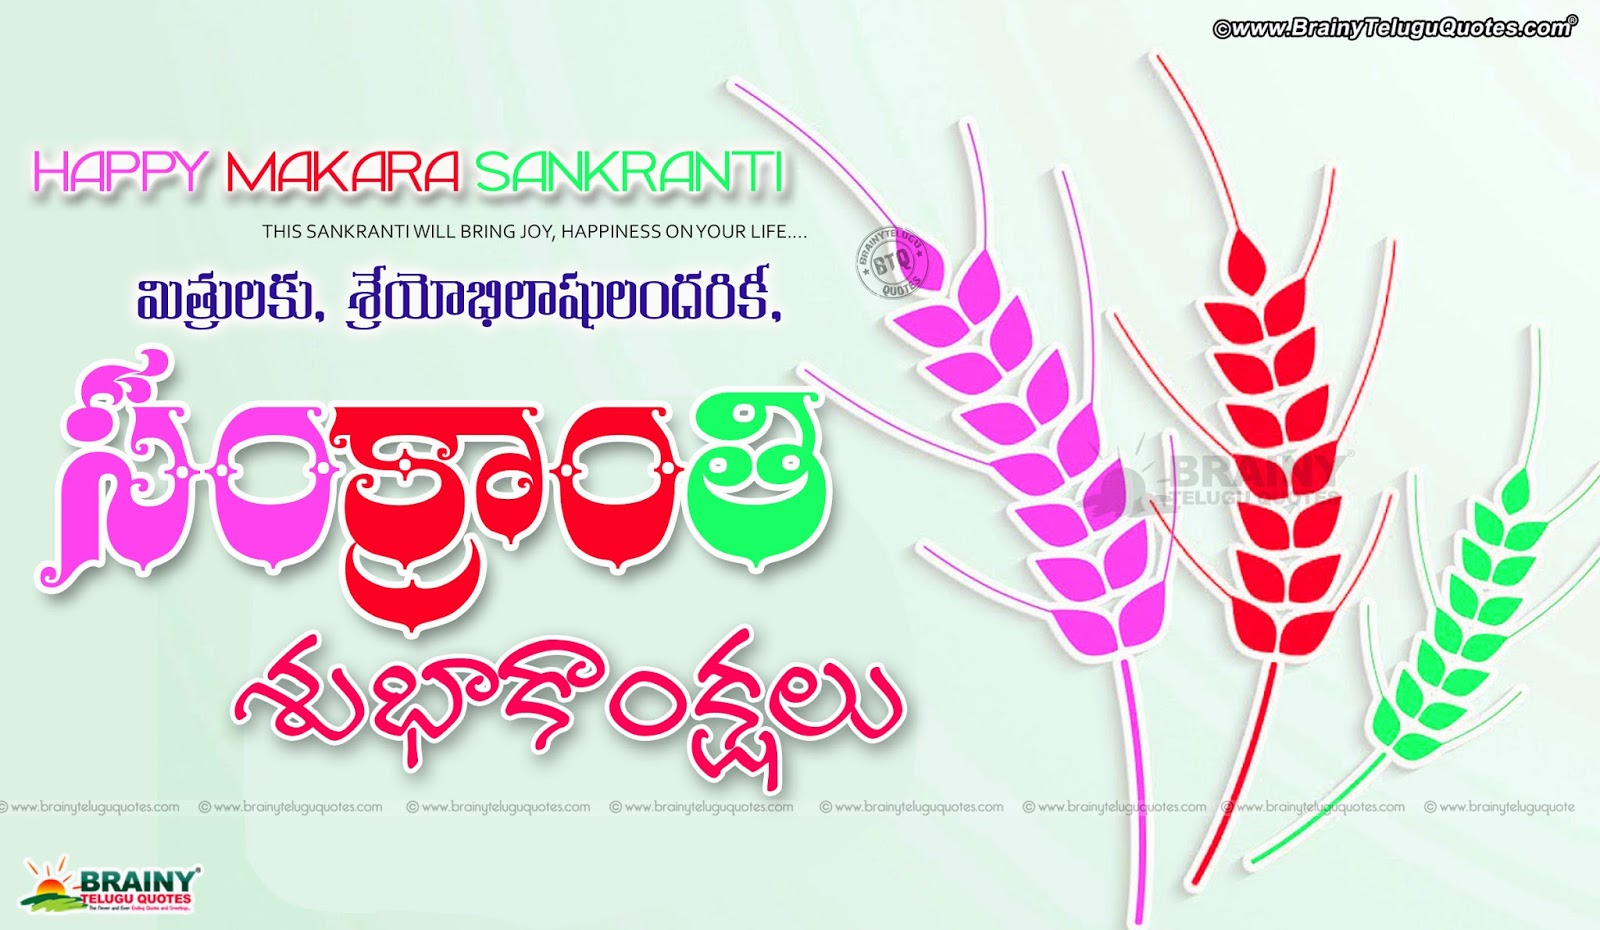 Telugu Sankranti Pongal Quotations Greetings Messages Wishes With